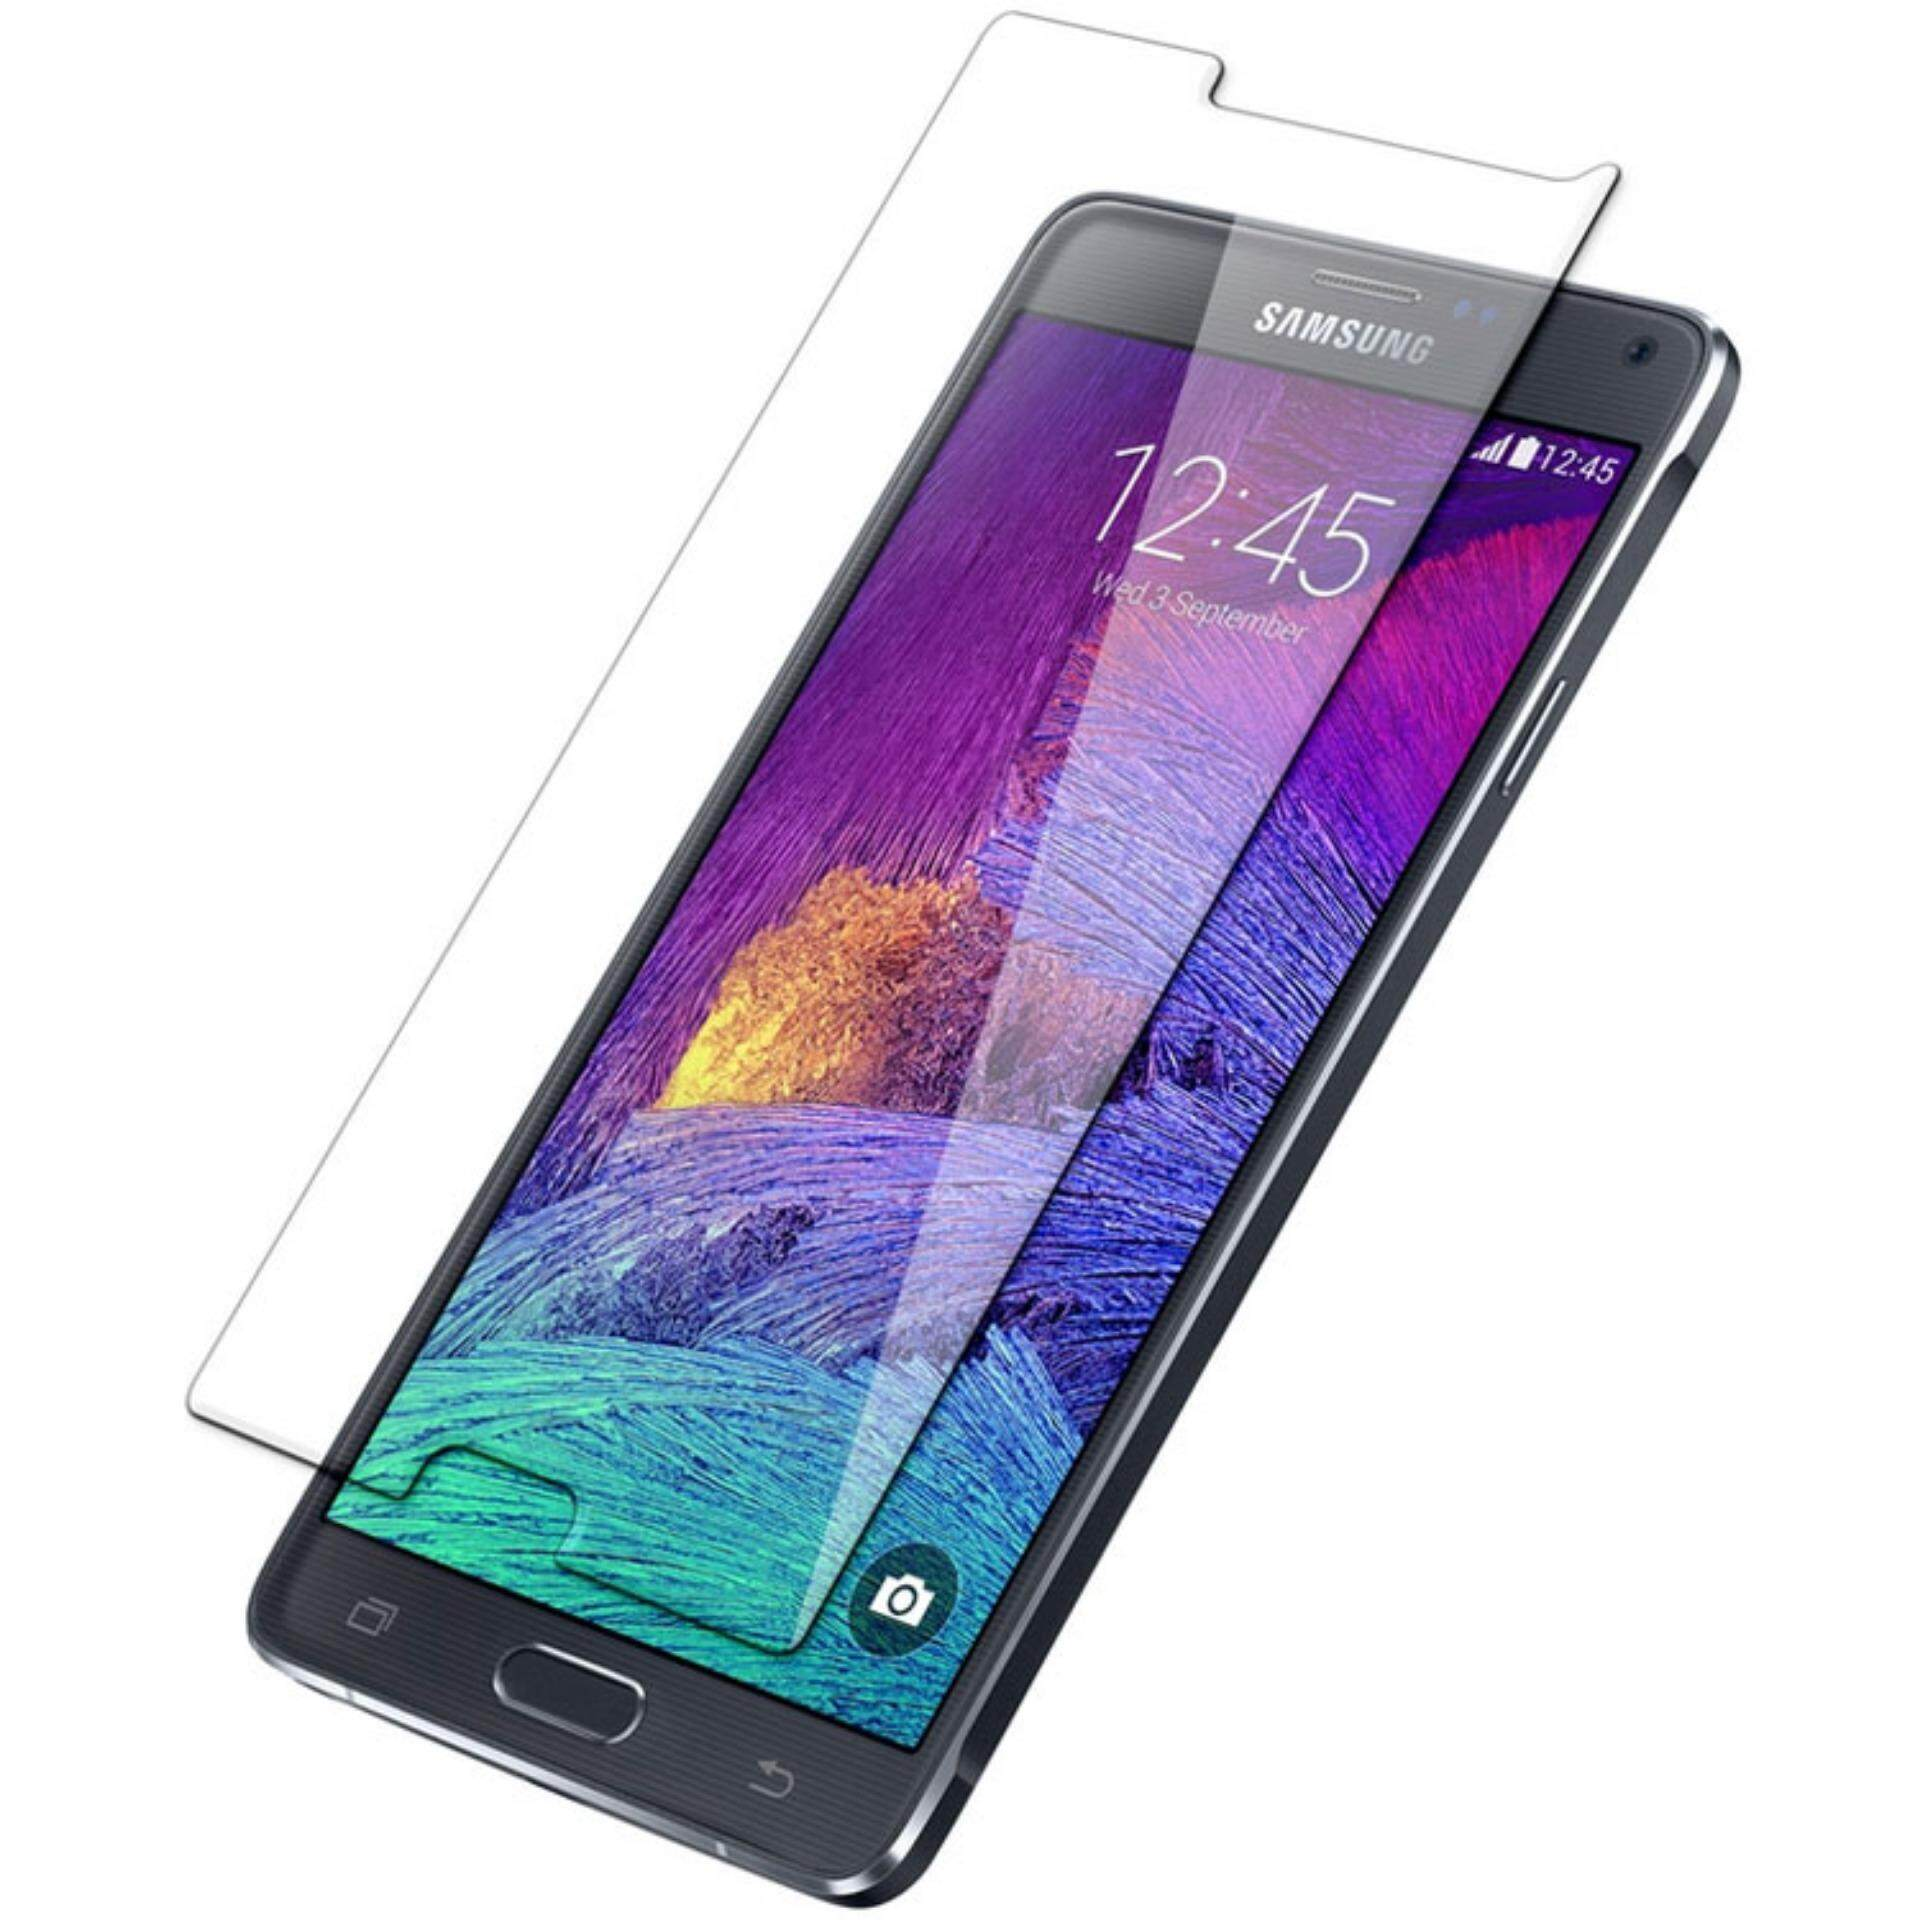 Cek Harga Mirror Screen Protector For Samsung Galaxy Note 4 X 2 Tempered Glass 9h Quality N910 Diamond